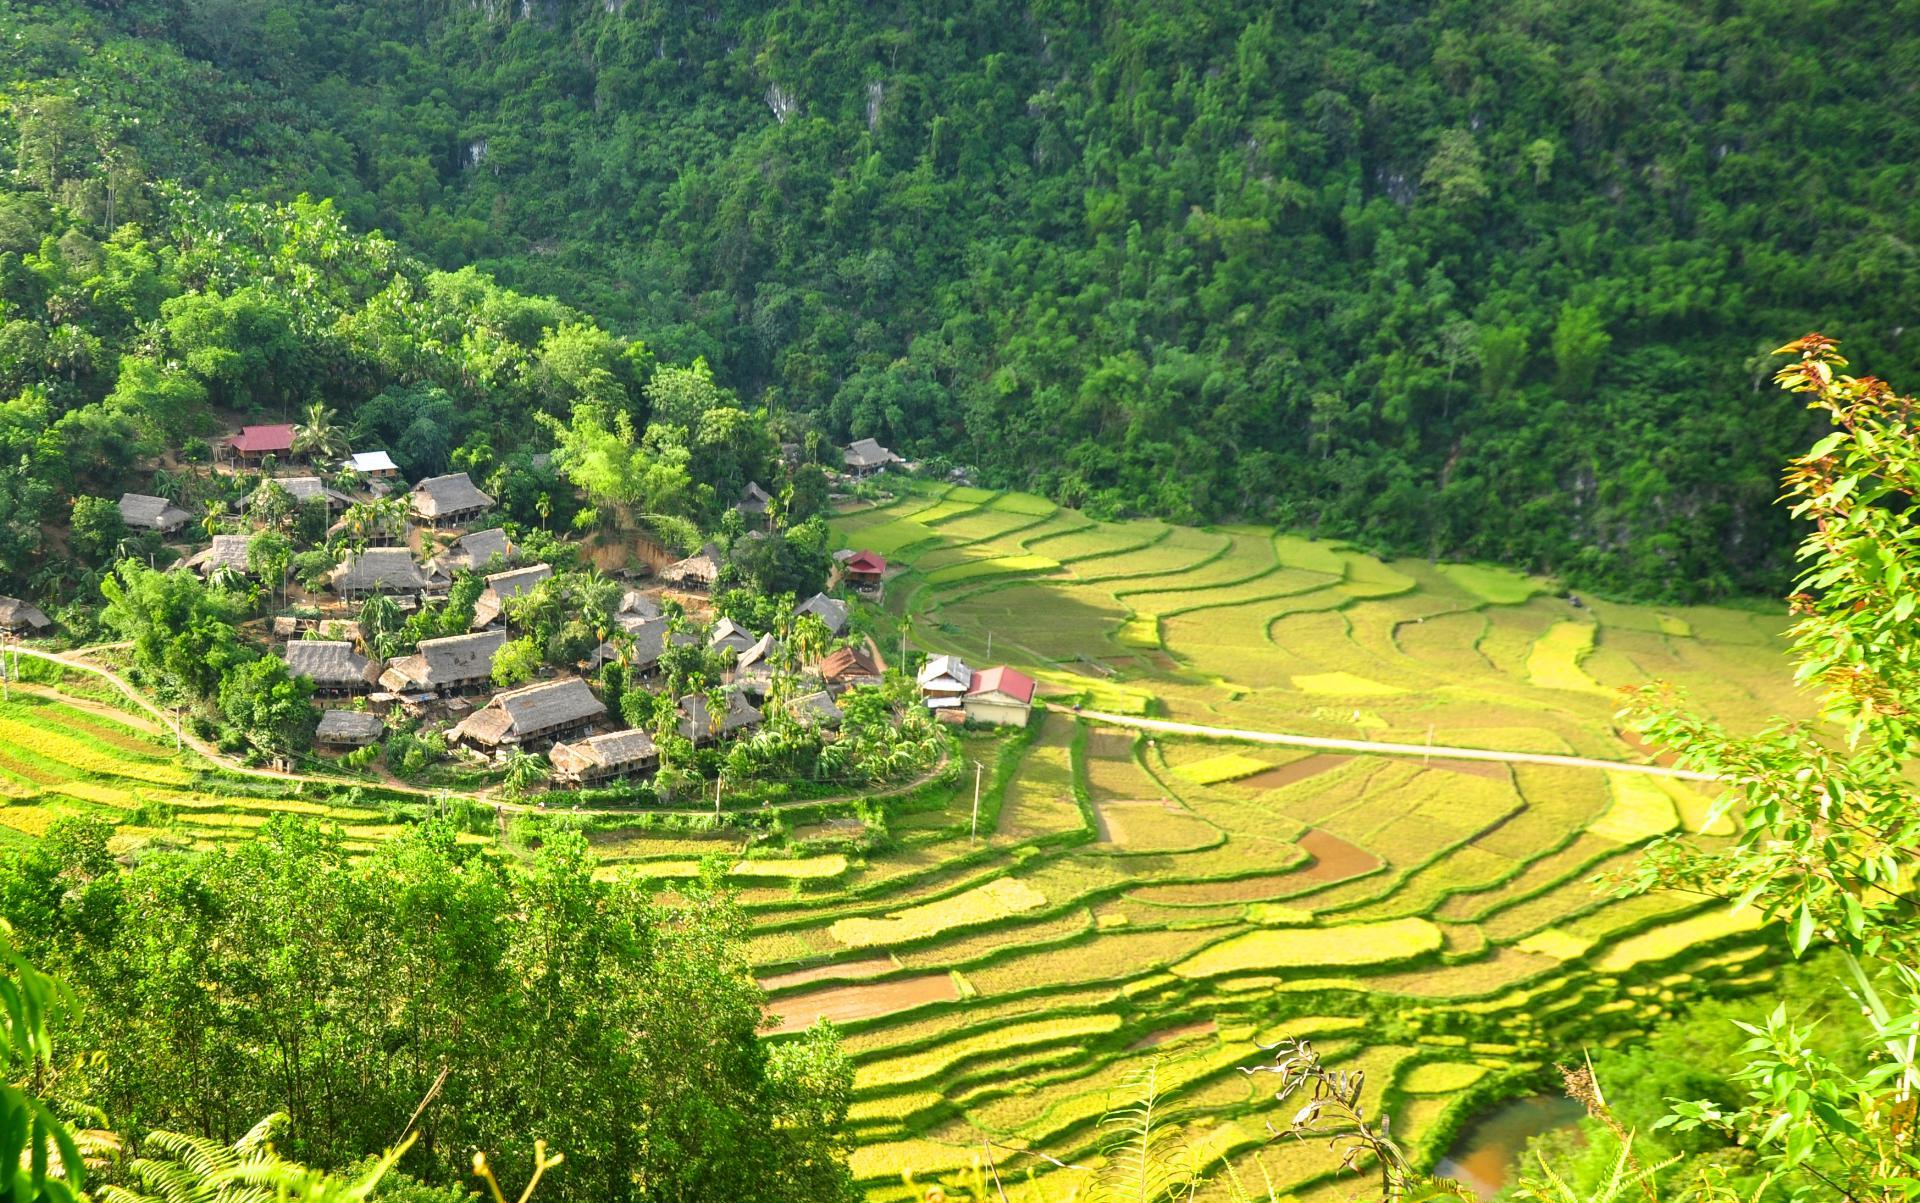 TREKKING OF MAI CHAU THROUGH PU LUONG VILLAGE